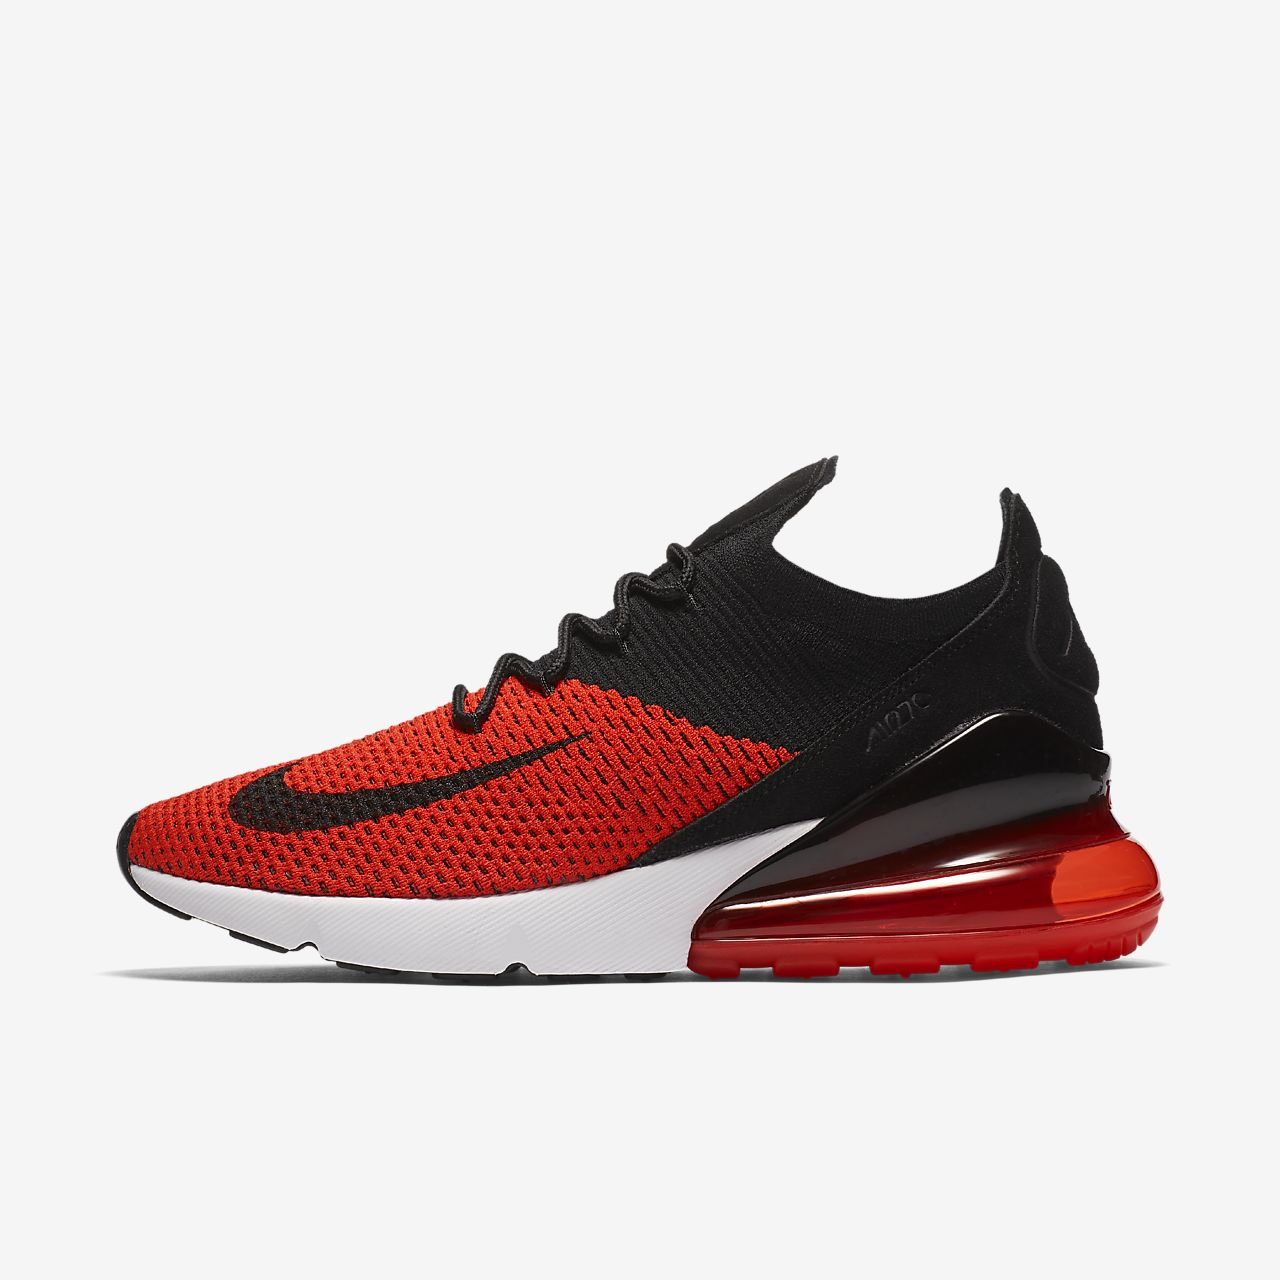 finest selection c0189 ea305 ... Nike Air Max 270 Flyknit Men s Shoe